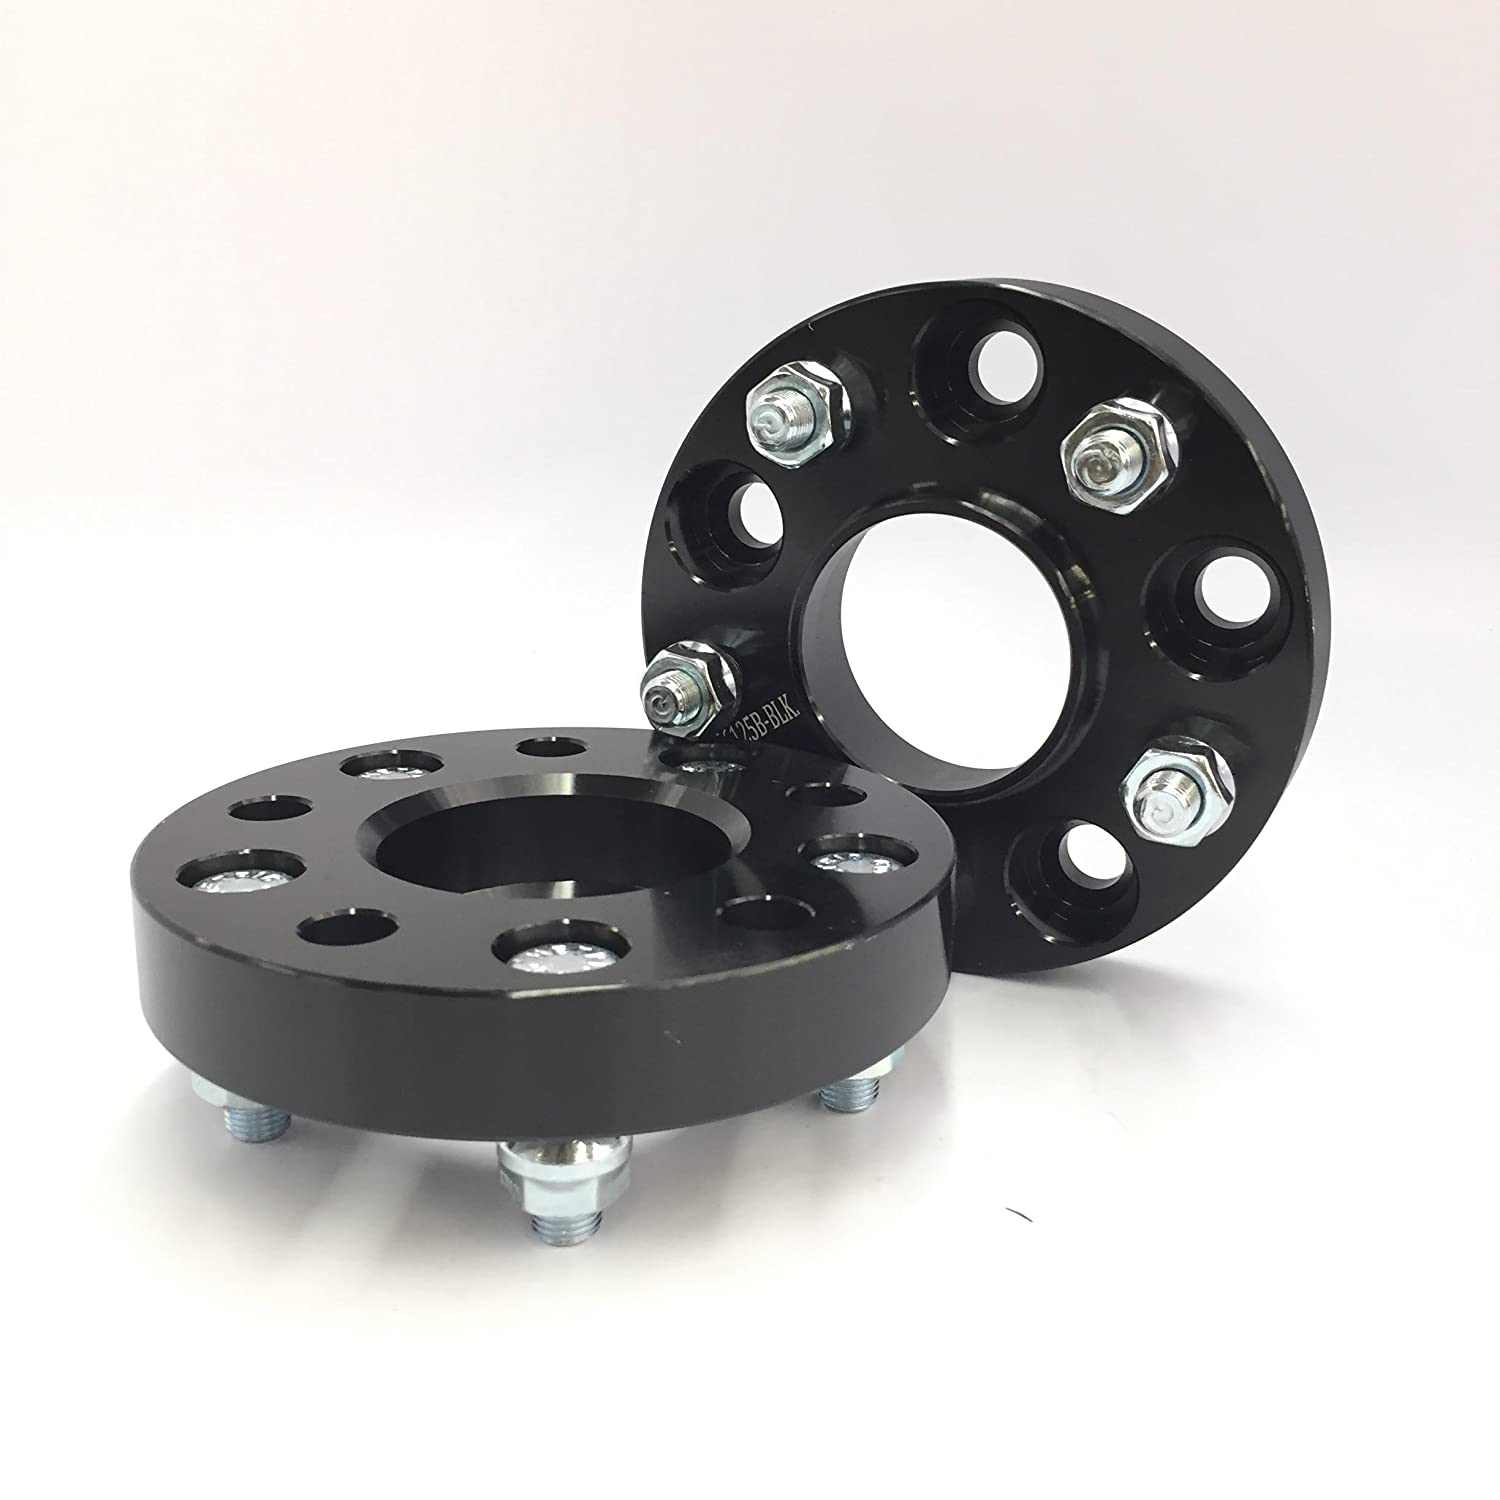 Customadeonly 2 Pieces 1 25mm Black Hub Centric Wheel Spacers 5x114.3 5x4.5 CB 66.1mm 12x1.25 for Infiniti G35 G37 Ex35 Q60 Q50 Also Fits Nissan 240Sx 350Z 370Z 300Zx Altima Maxima Rogue T6 Aluminum